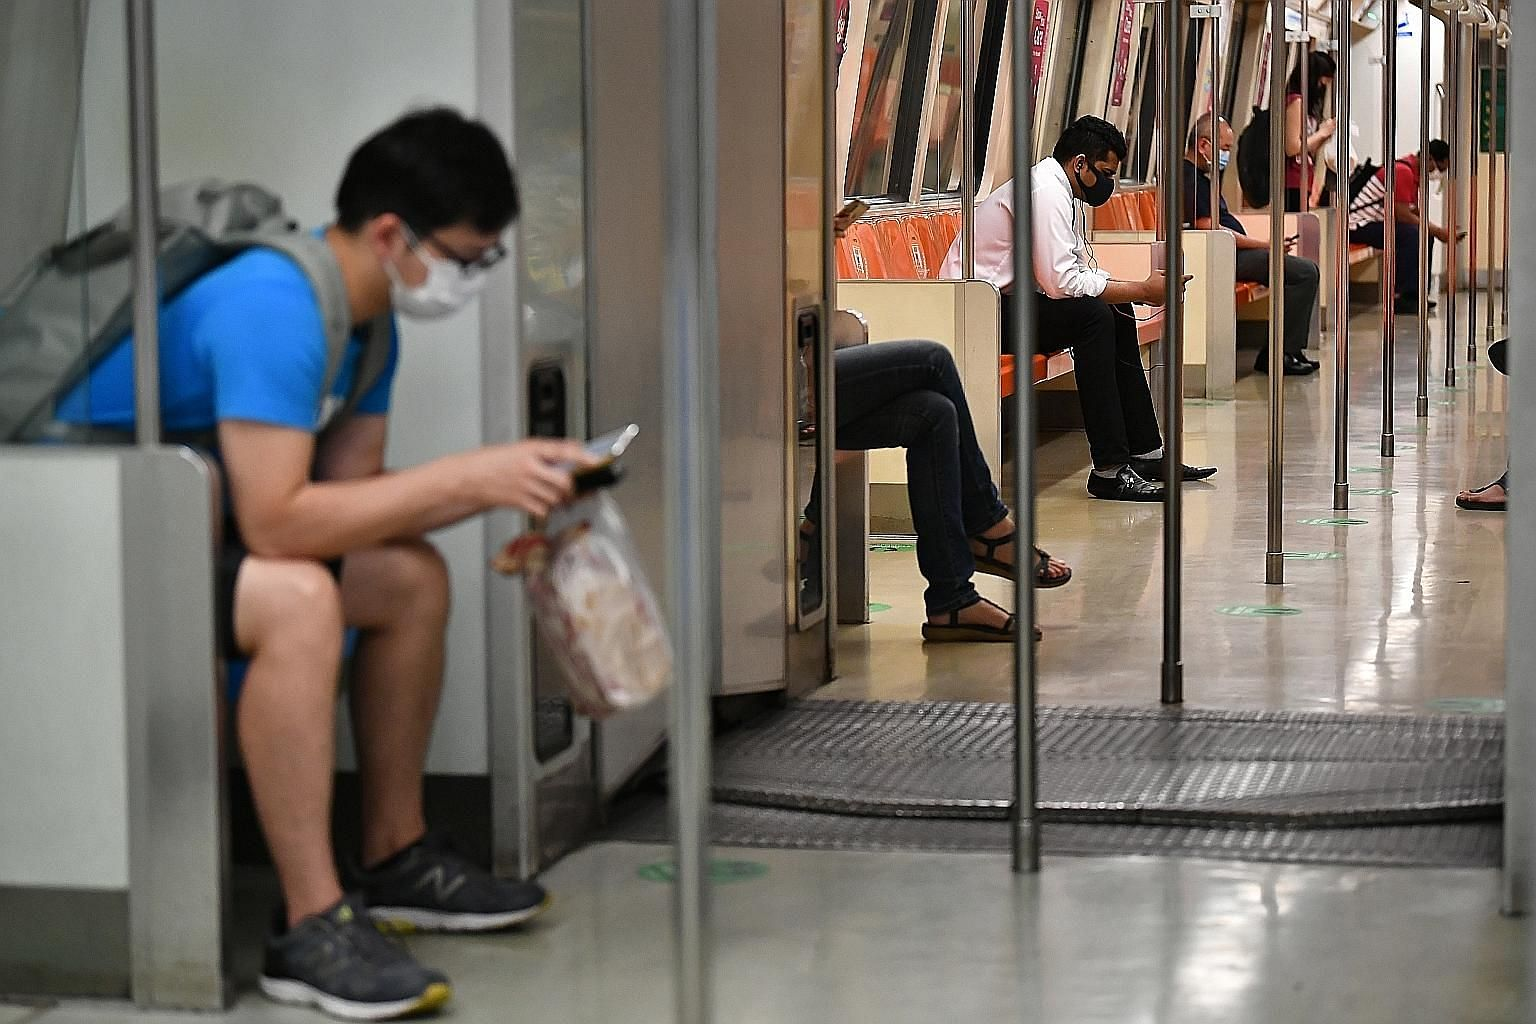 MRT trains are now marked with safe distancing stickers, and are also running at lower frequencies because of lower demand.